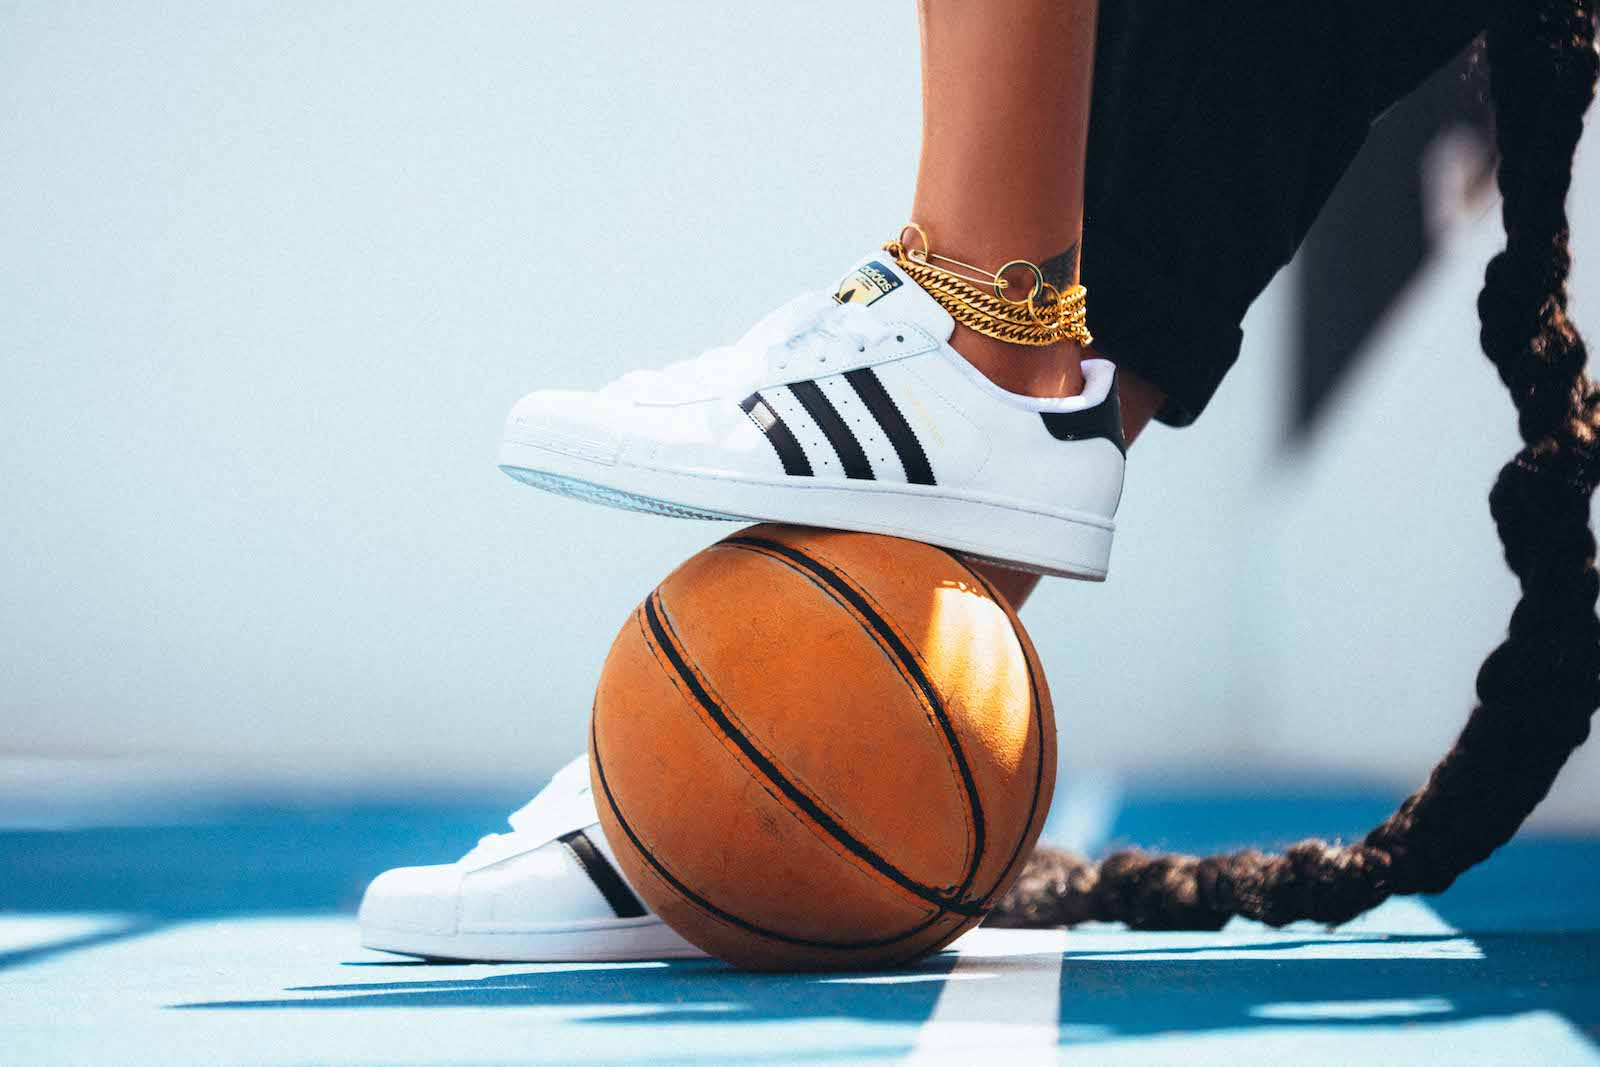 A closeup of a pair of adidas shoes on Liz Cambage, with one foot, decked out in gold anklets, resting on a basketball.